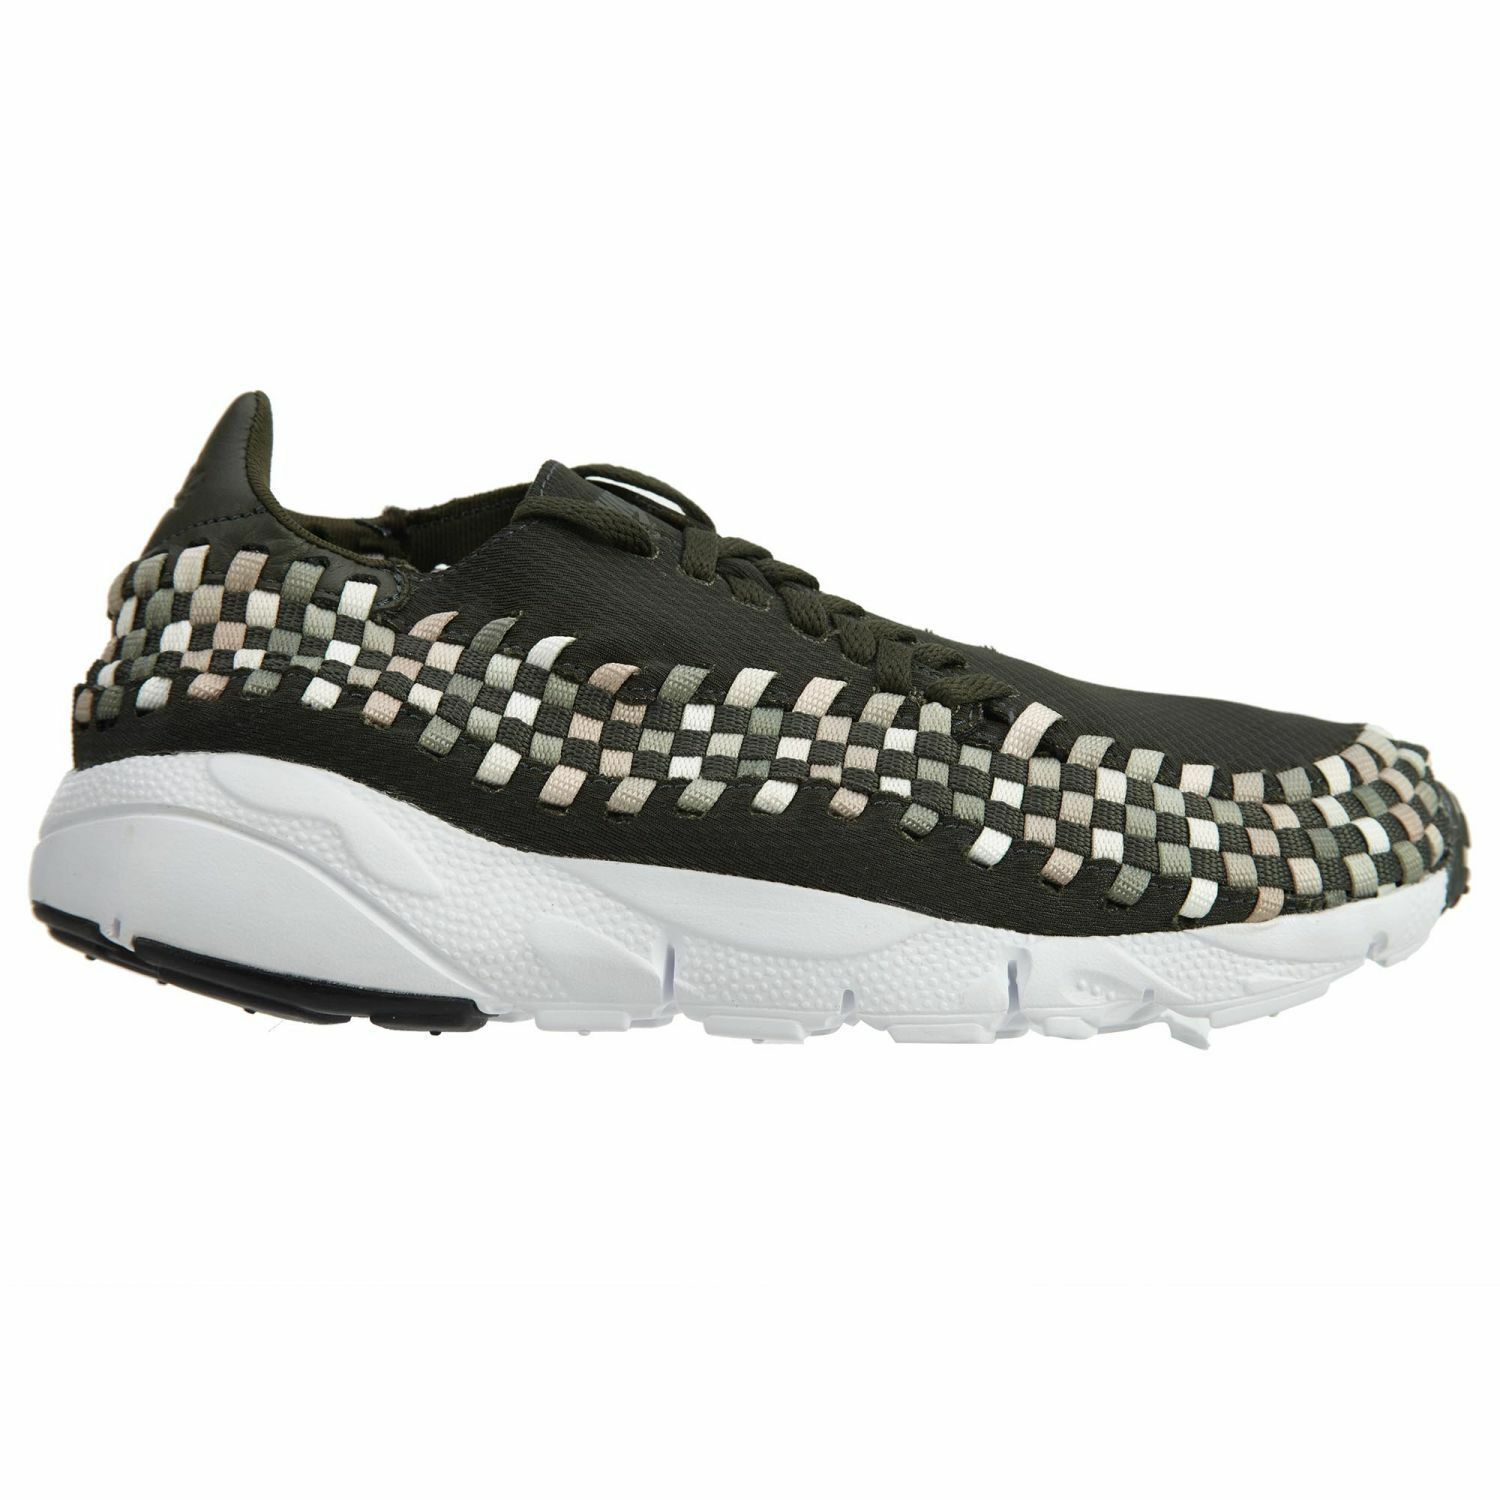 Nike air footscape sequoia woven nm bei 875797-300 sequoia footscape segel sportschuhe größe 9. 729c15